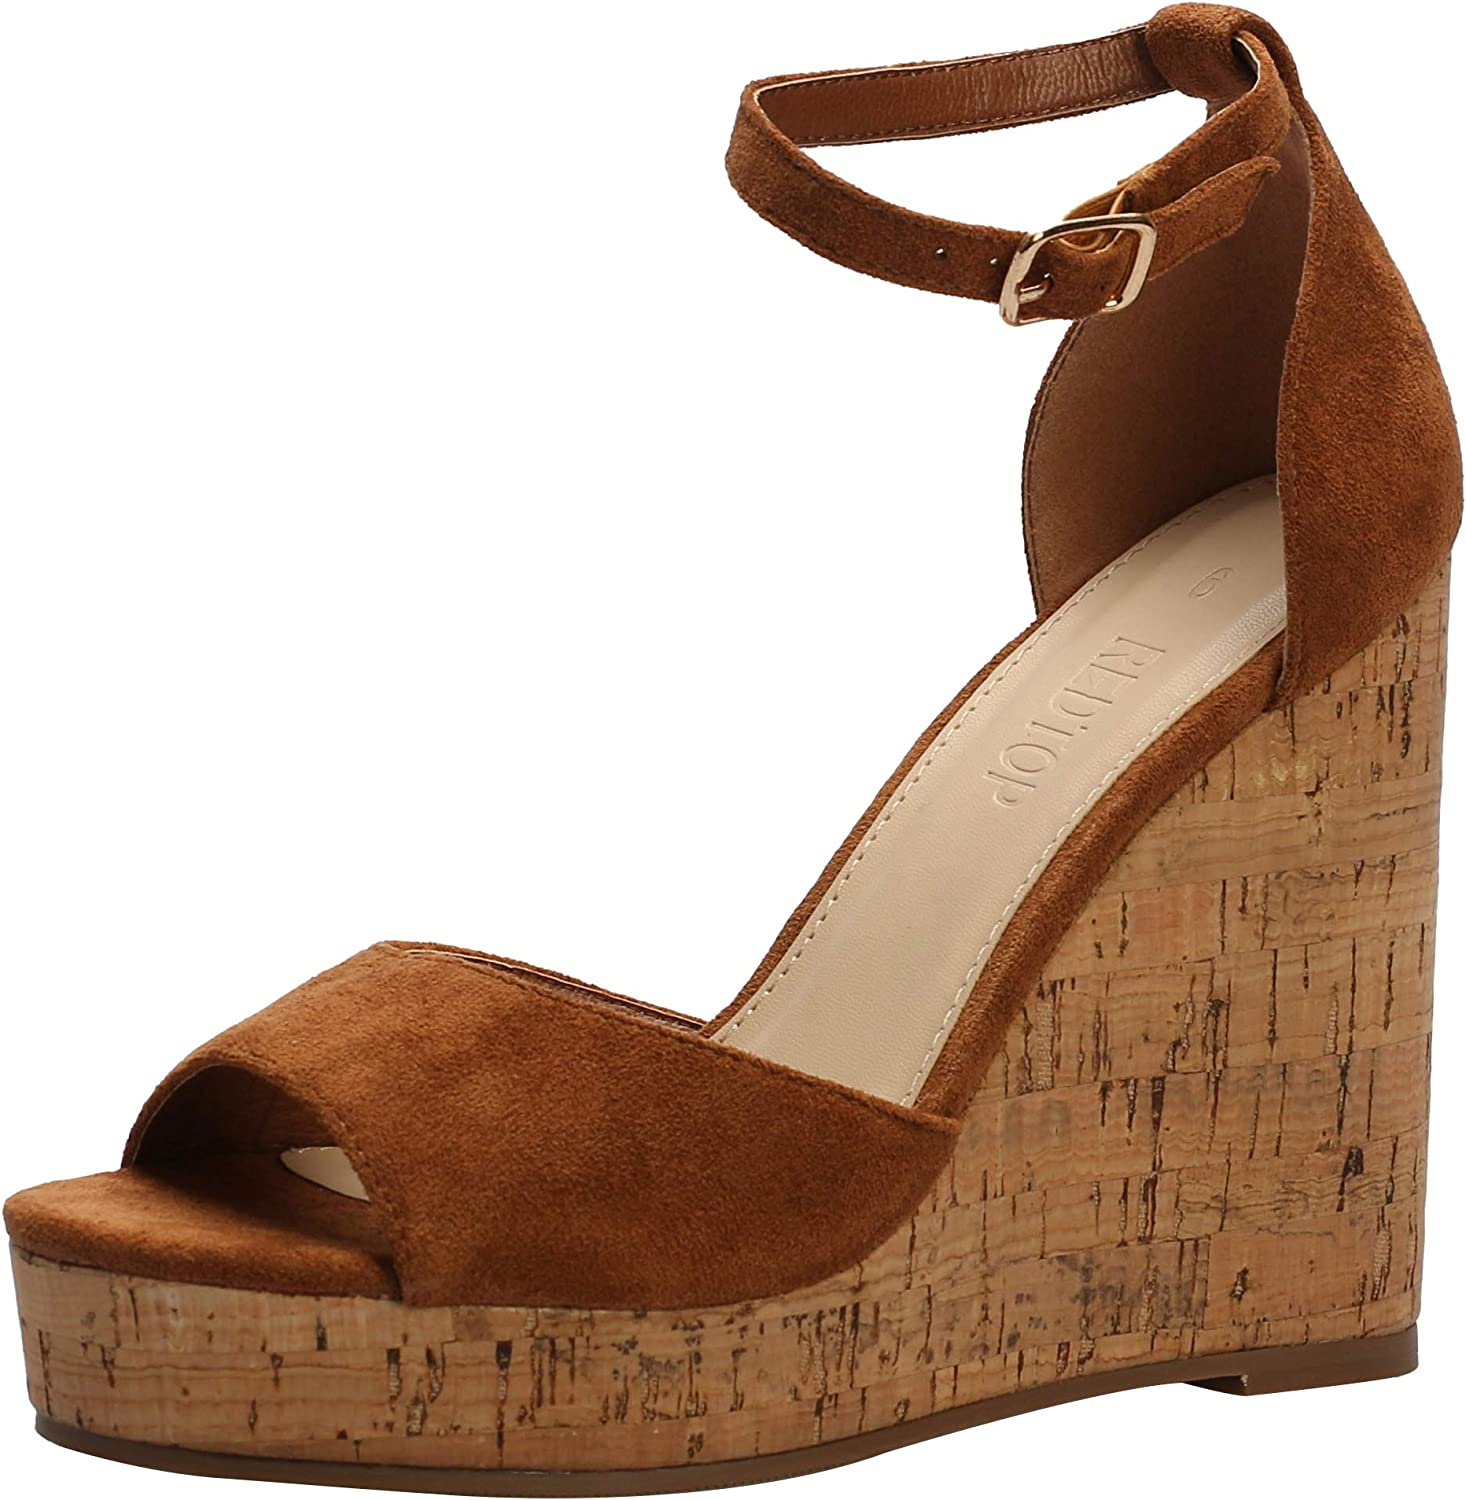 Max 61% OFF REDTOP Cheap mail order specialty store Women's Platform Sandals Wedge Toe Open Ankle Sanda Strap